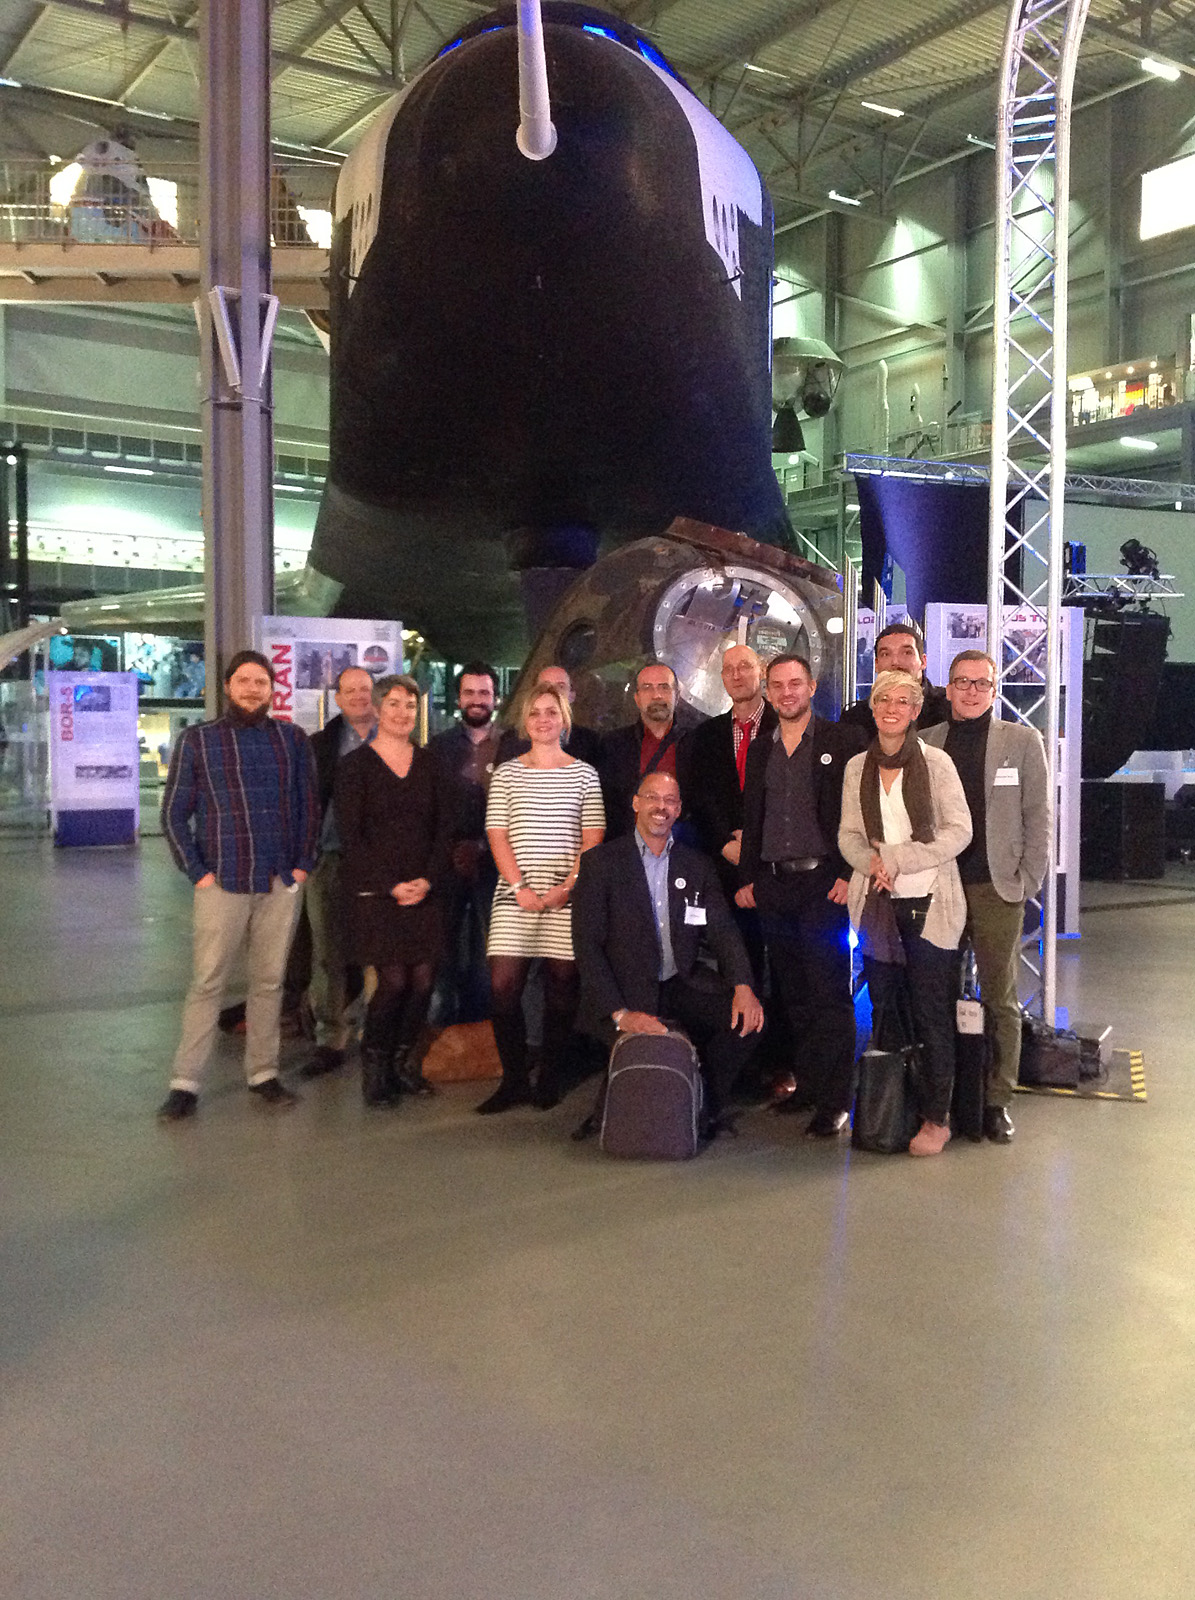 24 October, 2015 | Speakers in front of the Buran Space shuttle